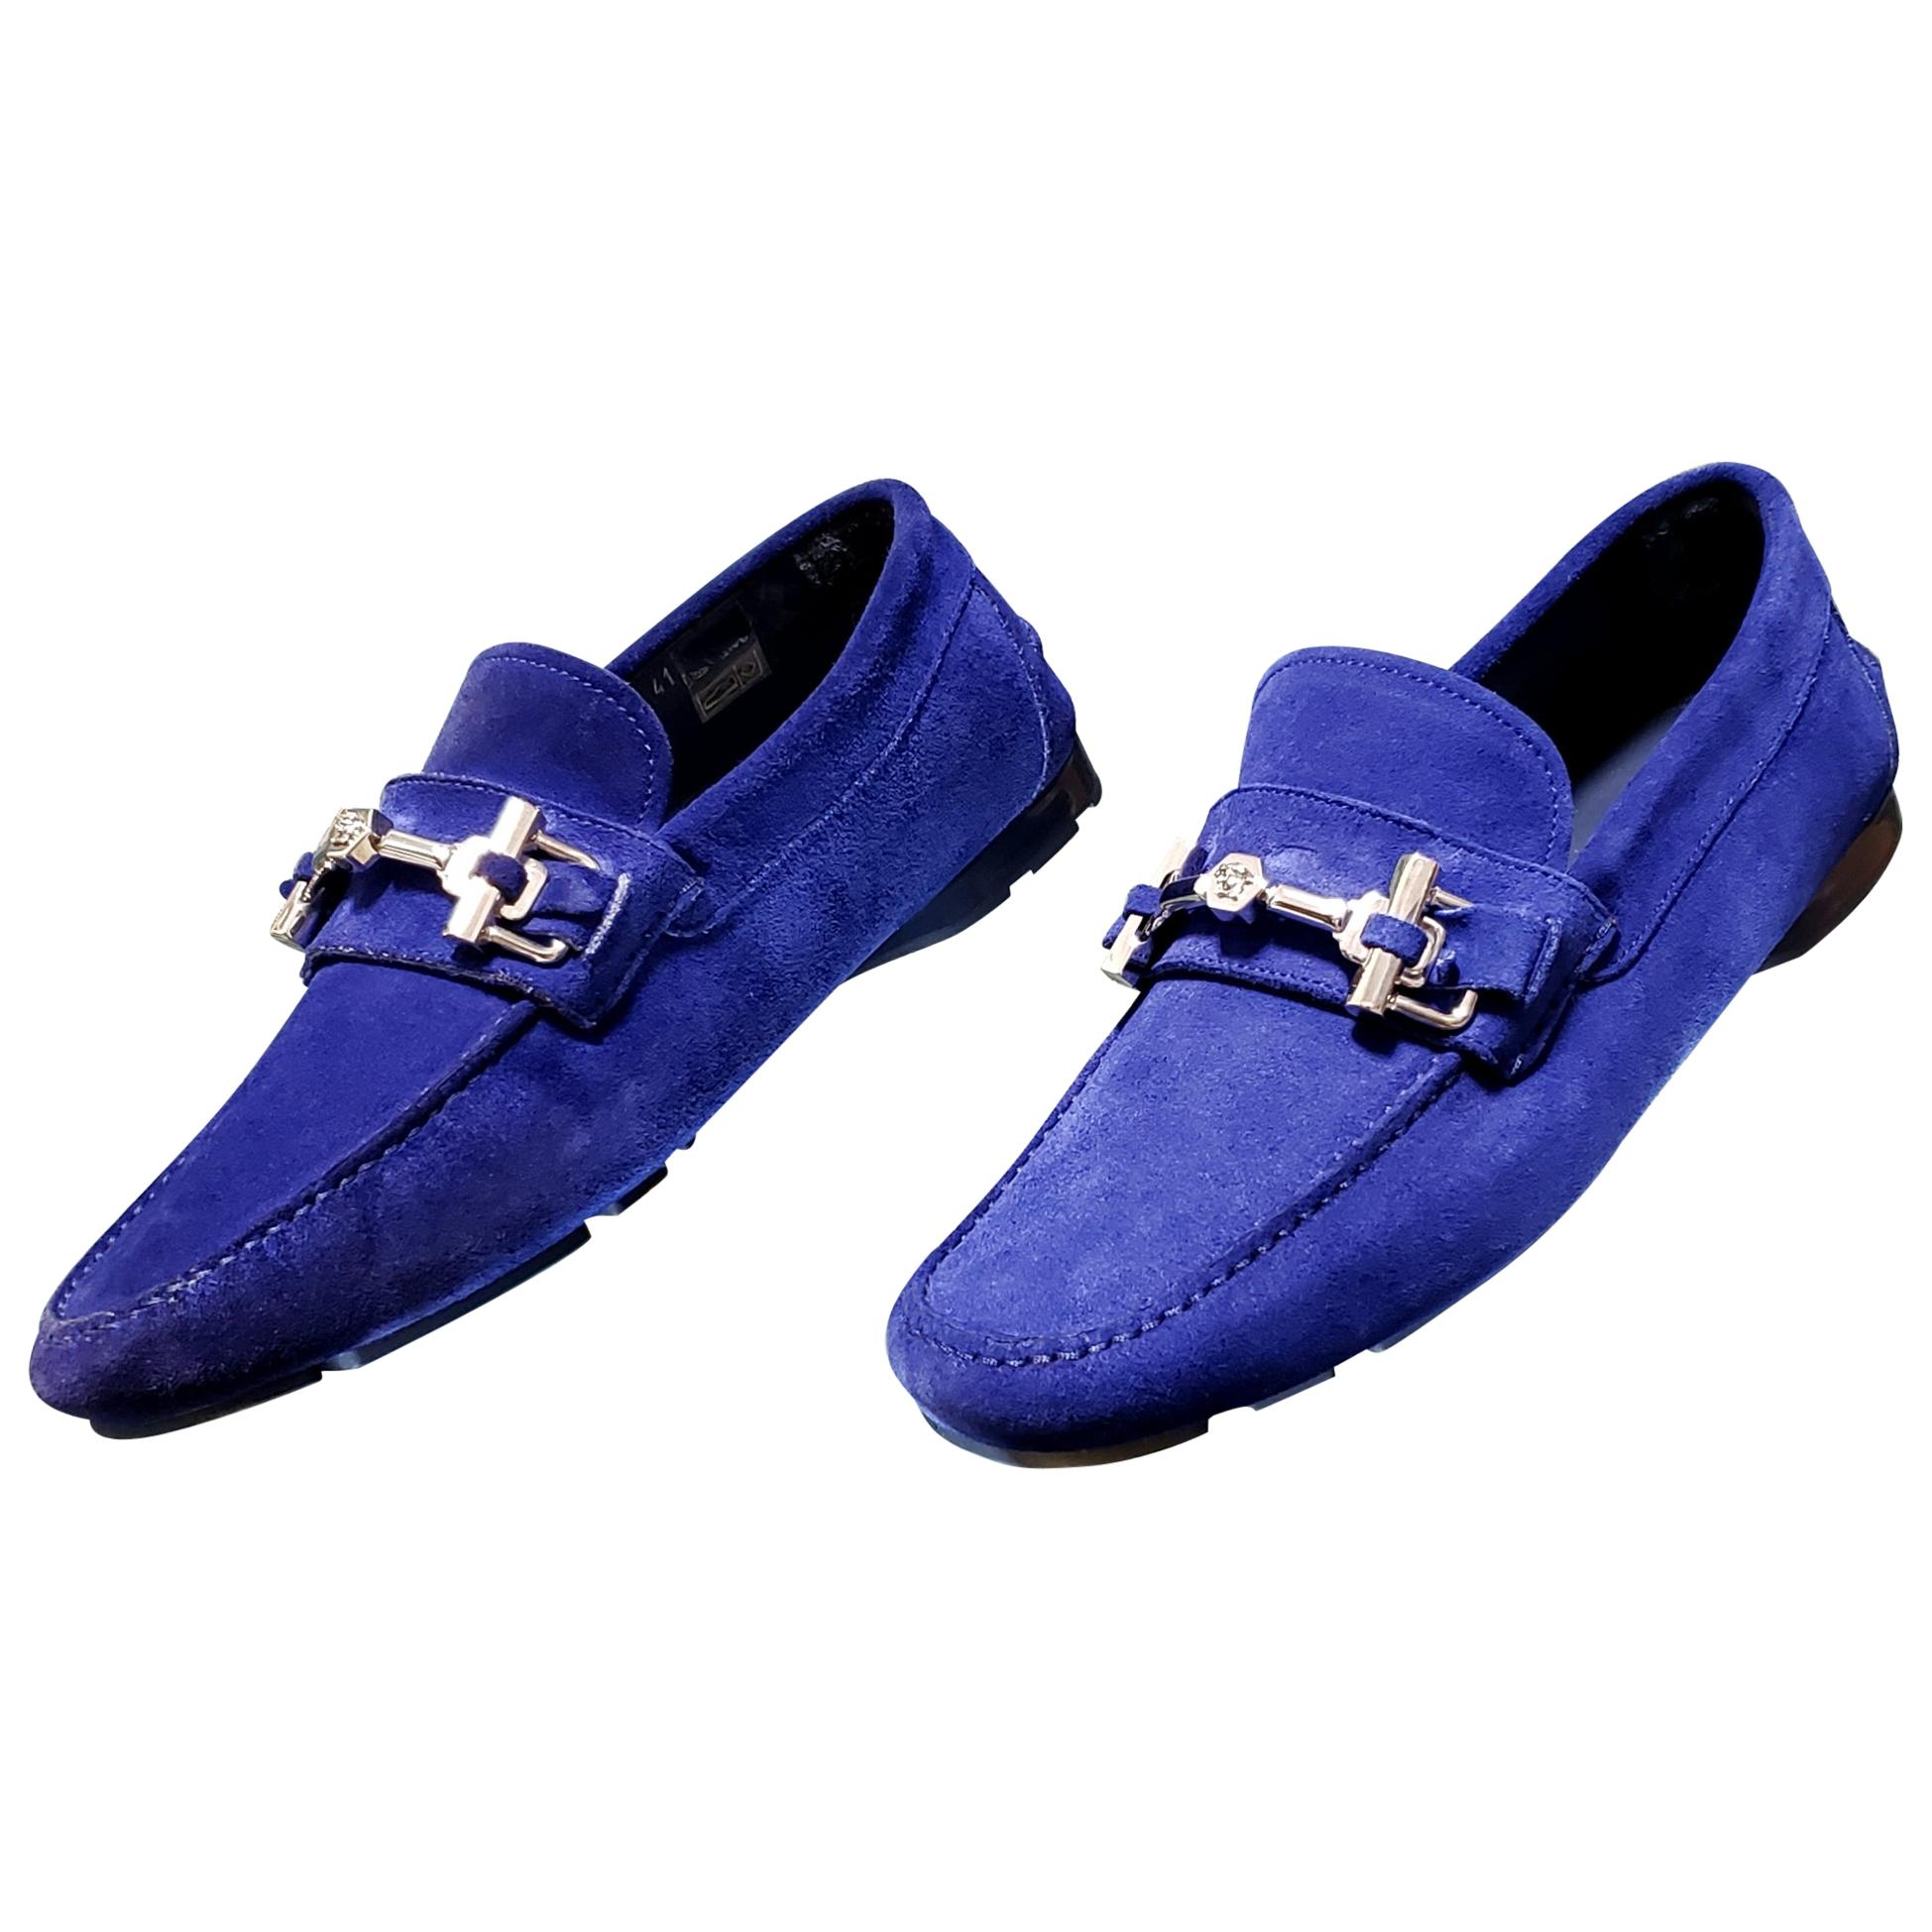 New VERSACE BLUE SUEDE LEATHER MOCCASINS 41 - 8